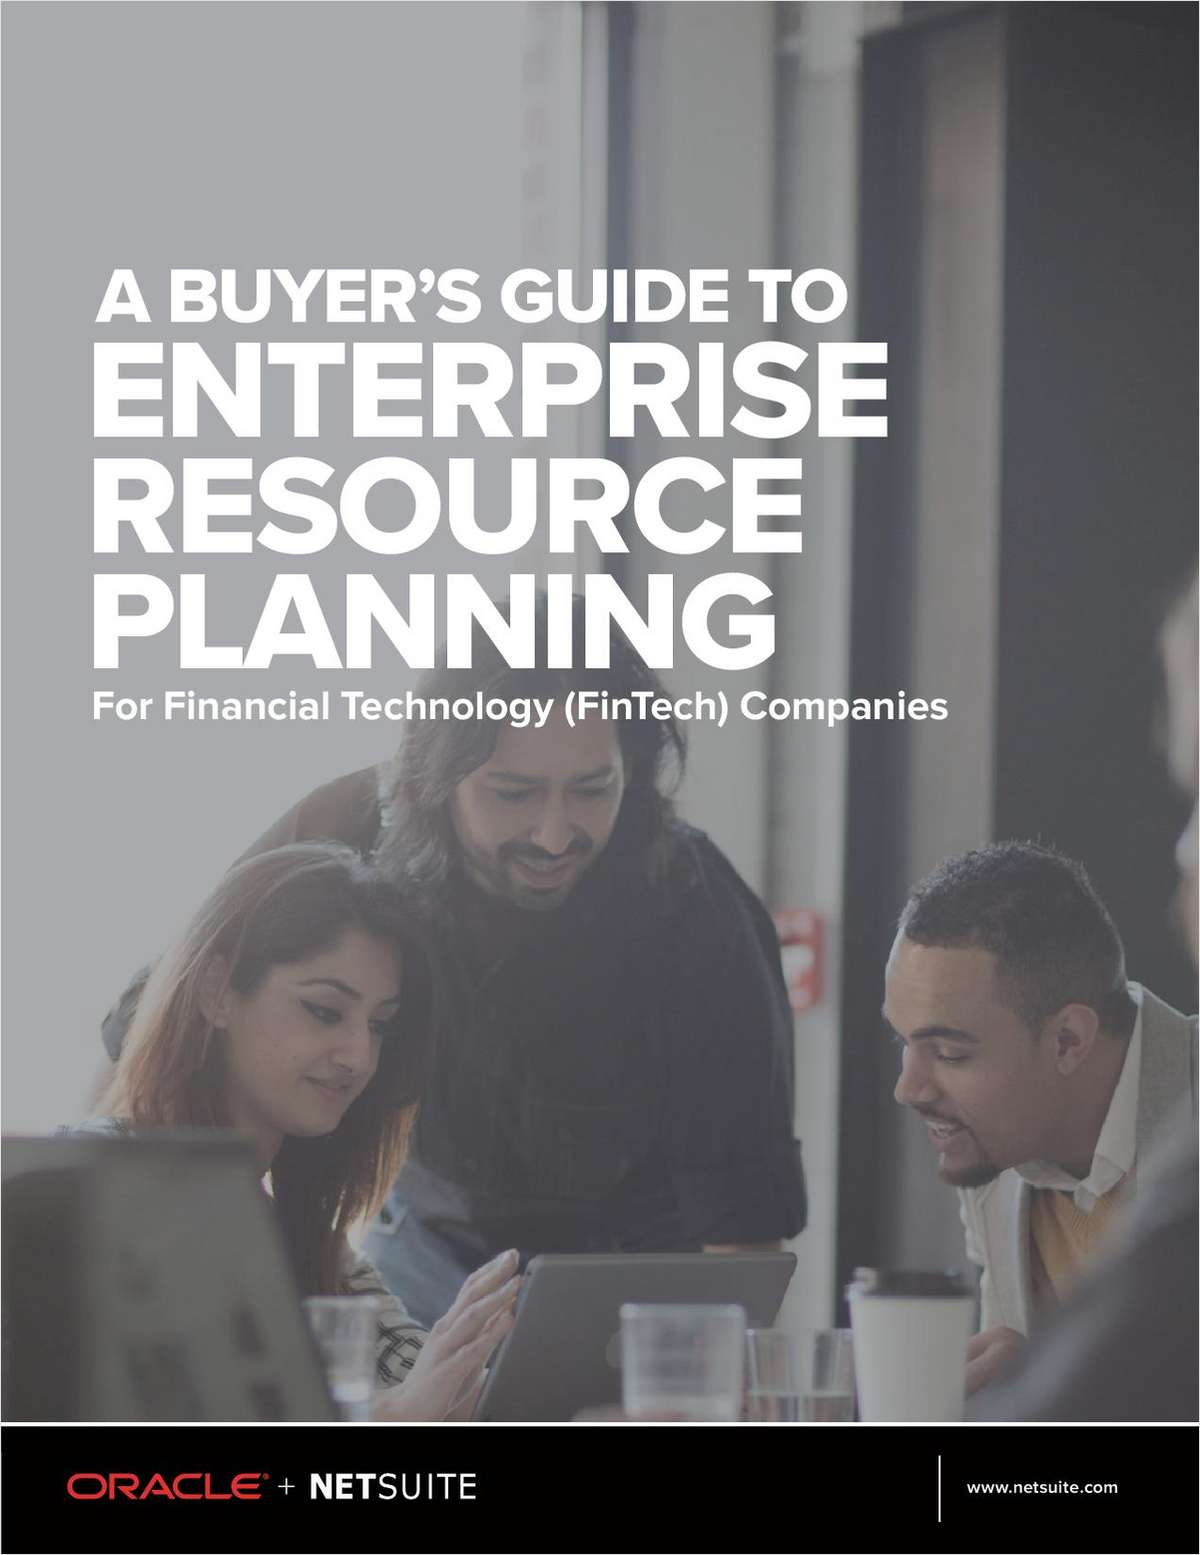 A Buyer's Guide to Enterprise Resource Planning for Fintech Companies